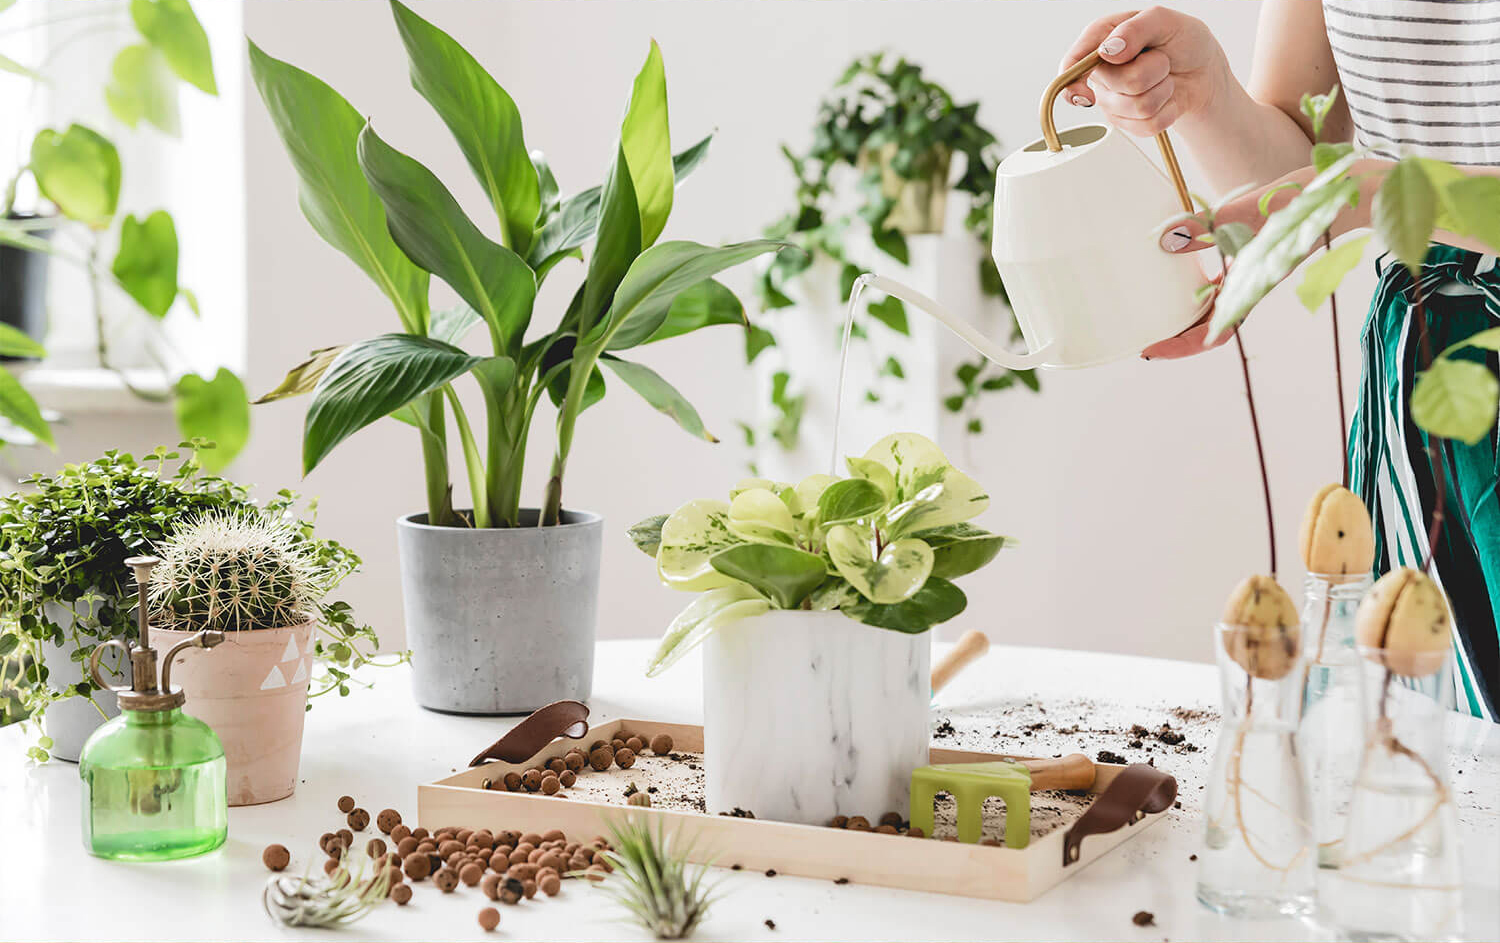 15 Brilliant and Easy Plant Care Tips